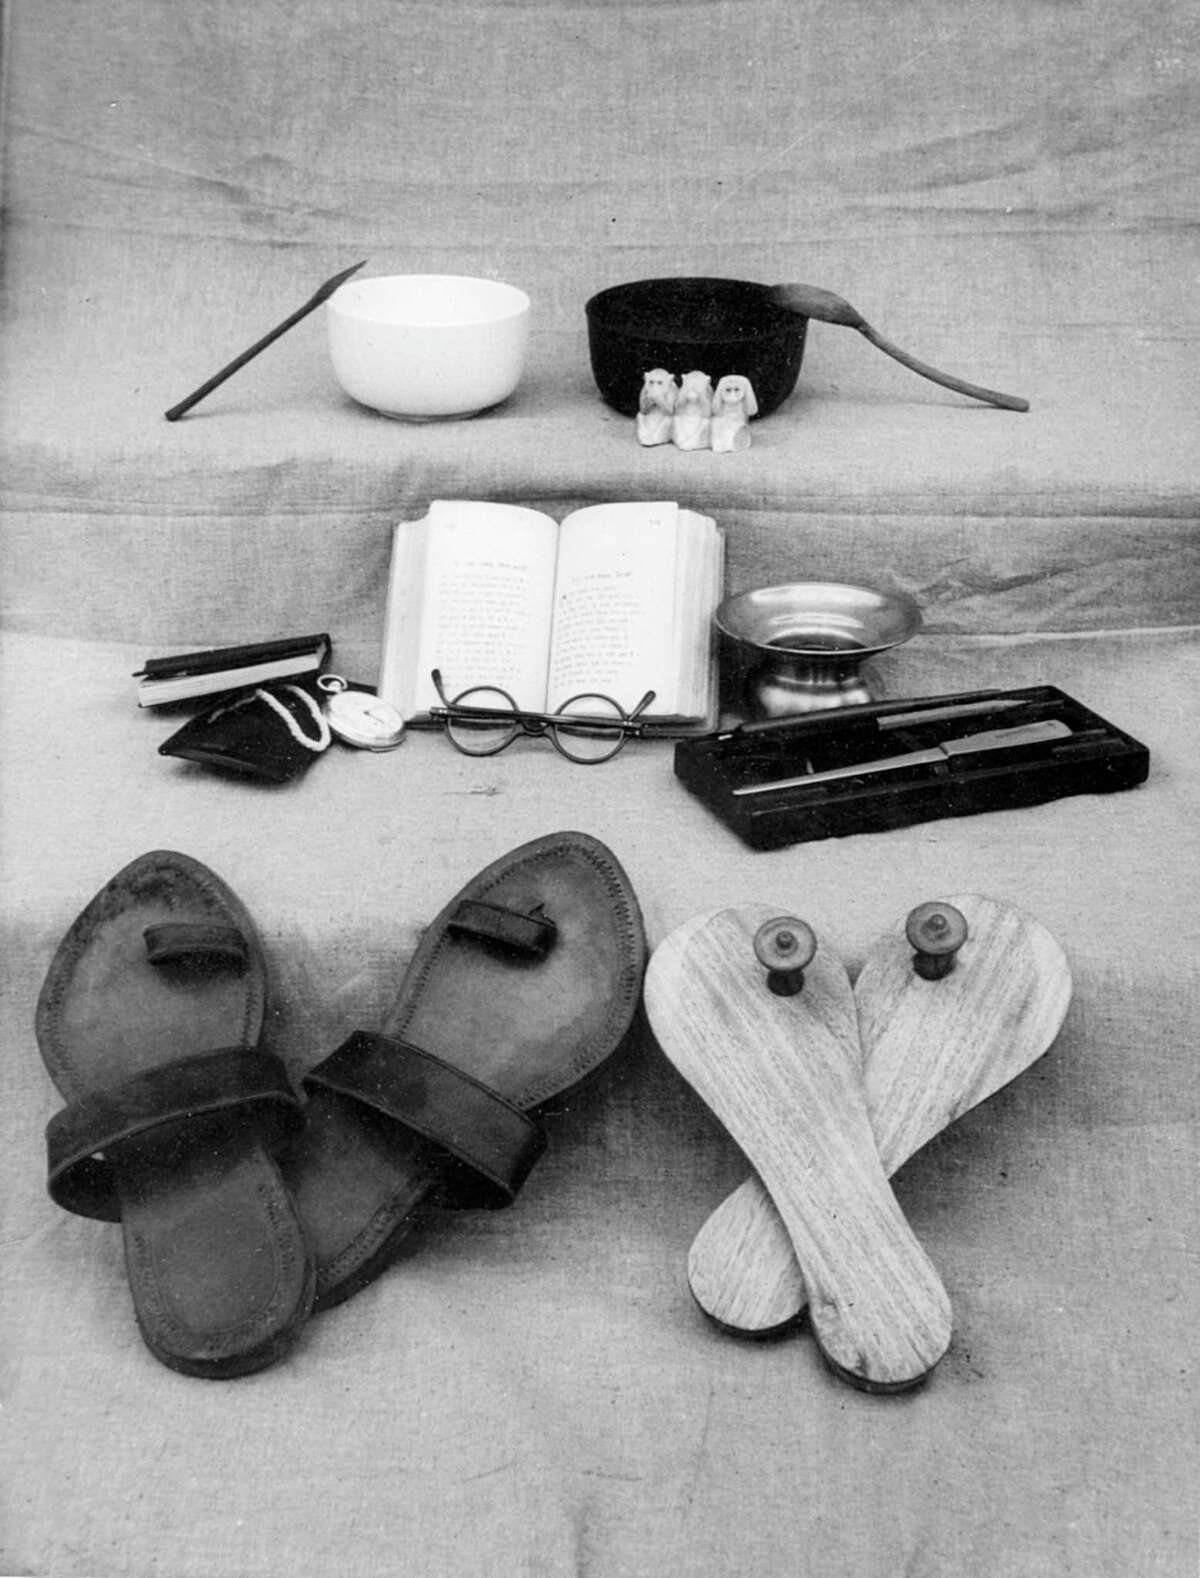 """This 1948 image of Ghandi's last possessions by an unknown photographer has intrigued Menil Collection director Josef Helfenstein for years. It inspired the exhibition """"Experiments with Truth: Gandhi and Images of Nonviolence,"""" which opens Oct. 2 at the Menil Collection."""